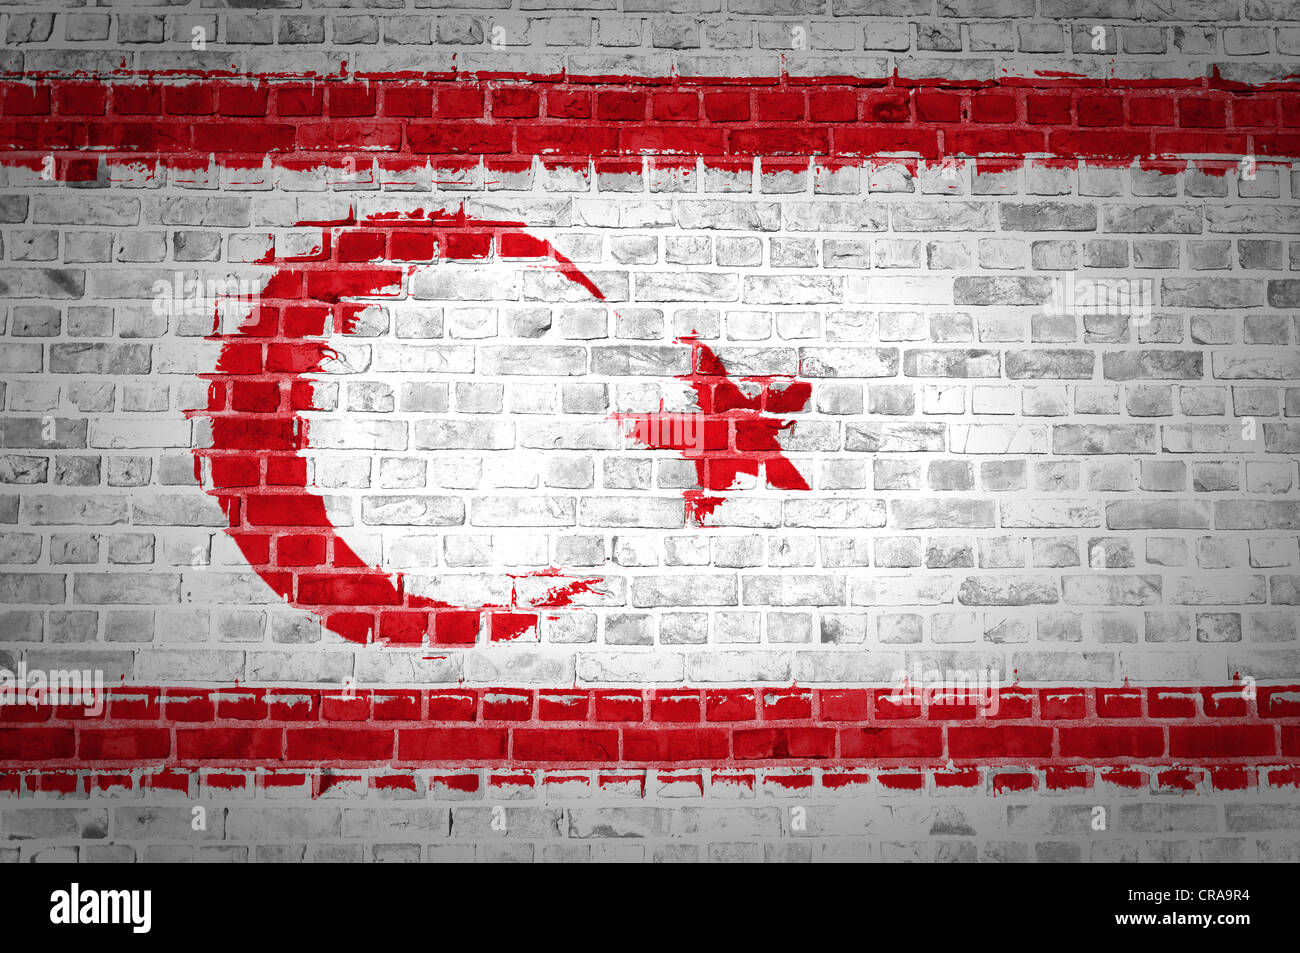 An image of the Northern Cyprus flag painted on a brick wall in an urban location - Stock Image